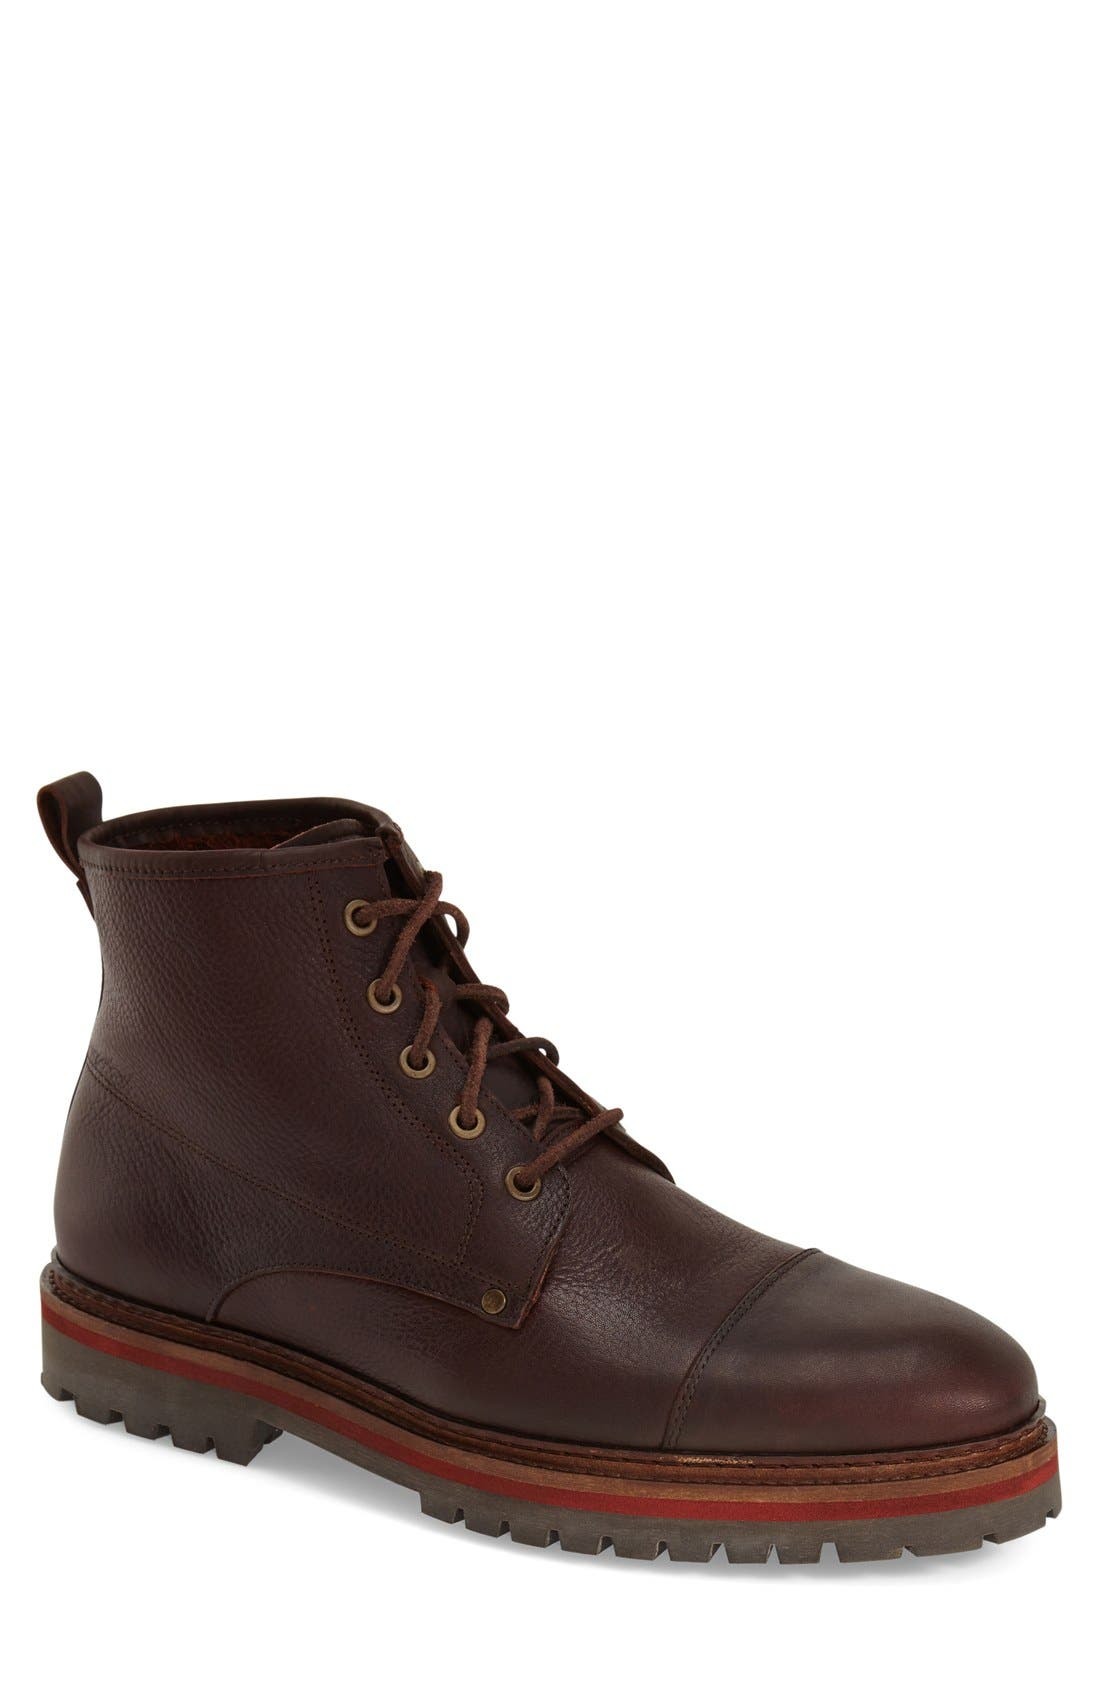 'Louden' Boot,                         Main,                         color, 240